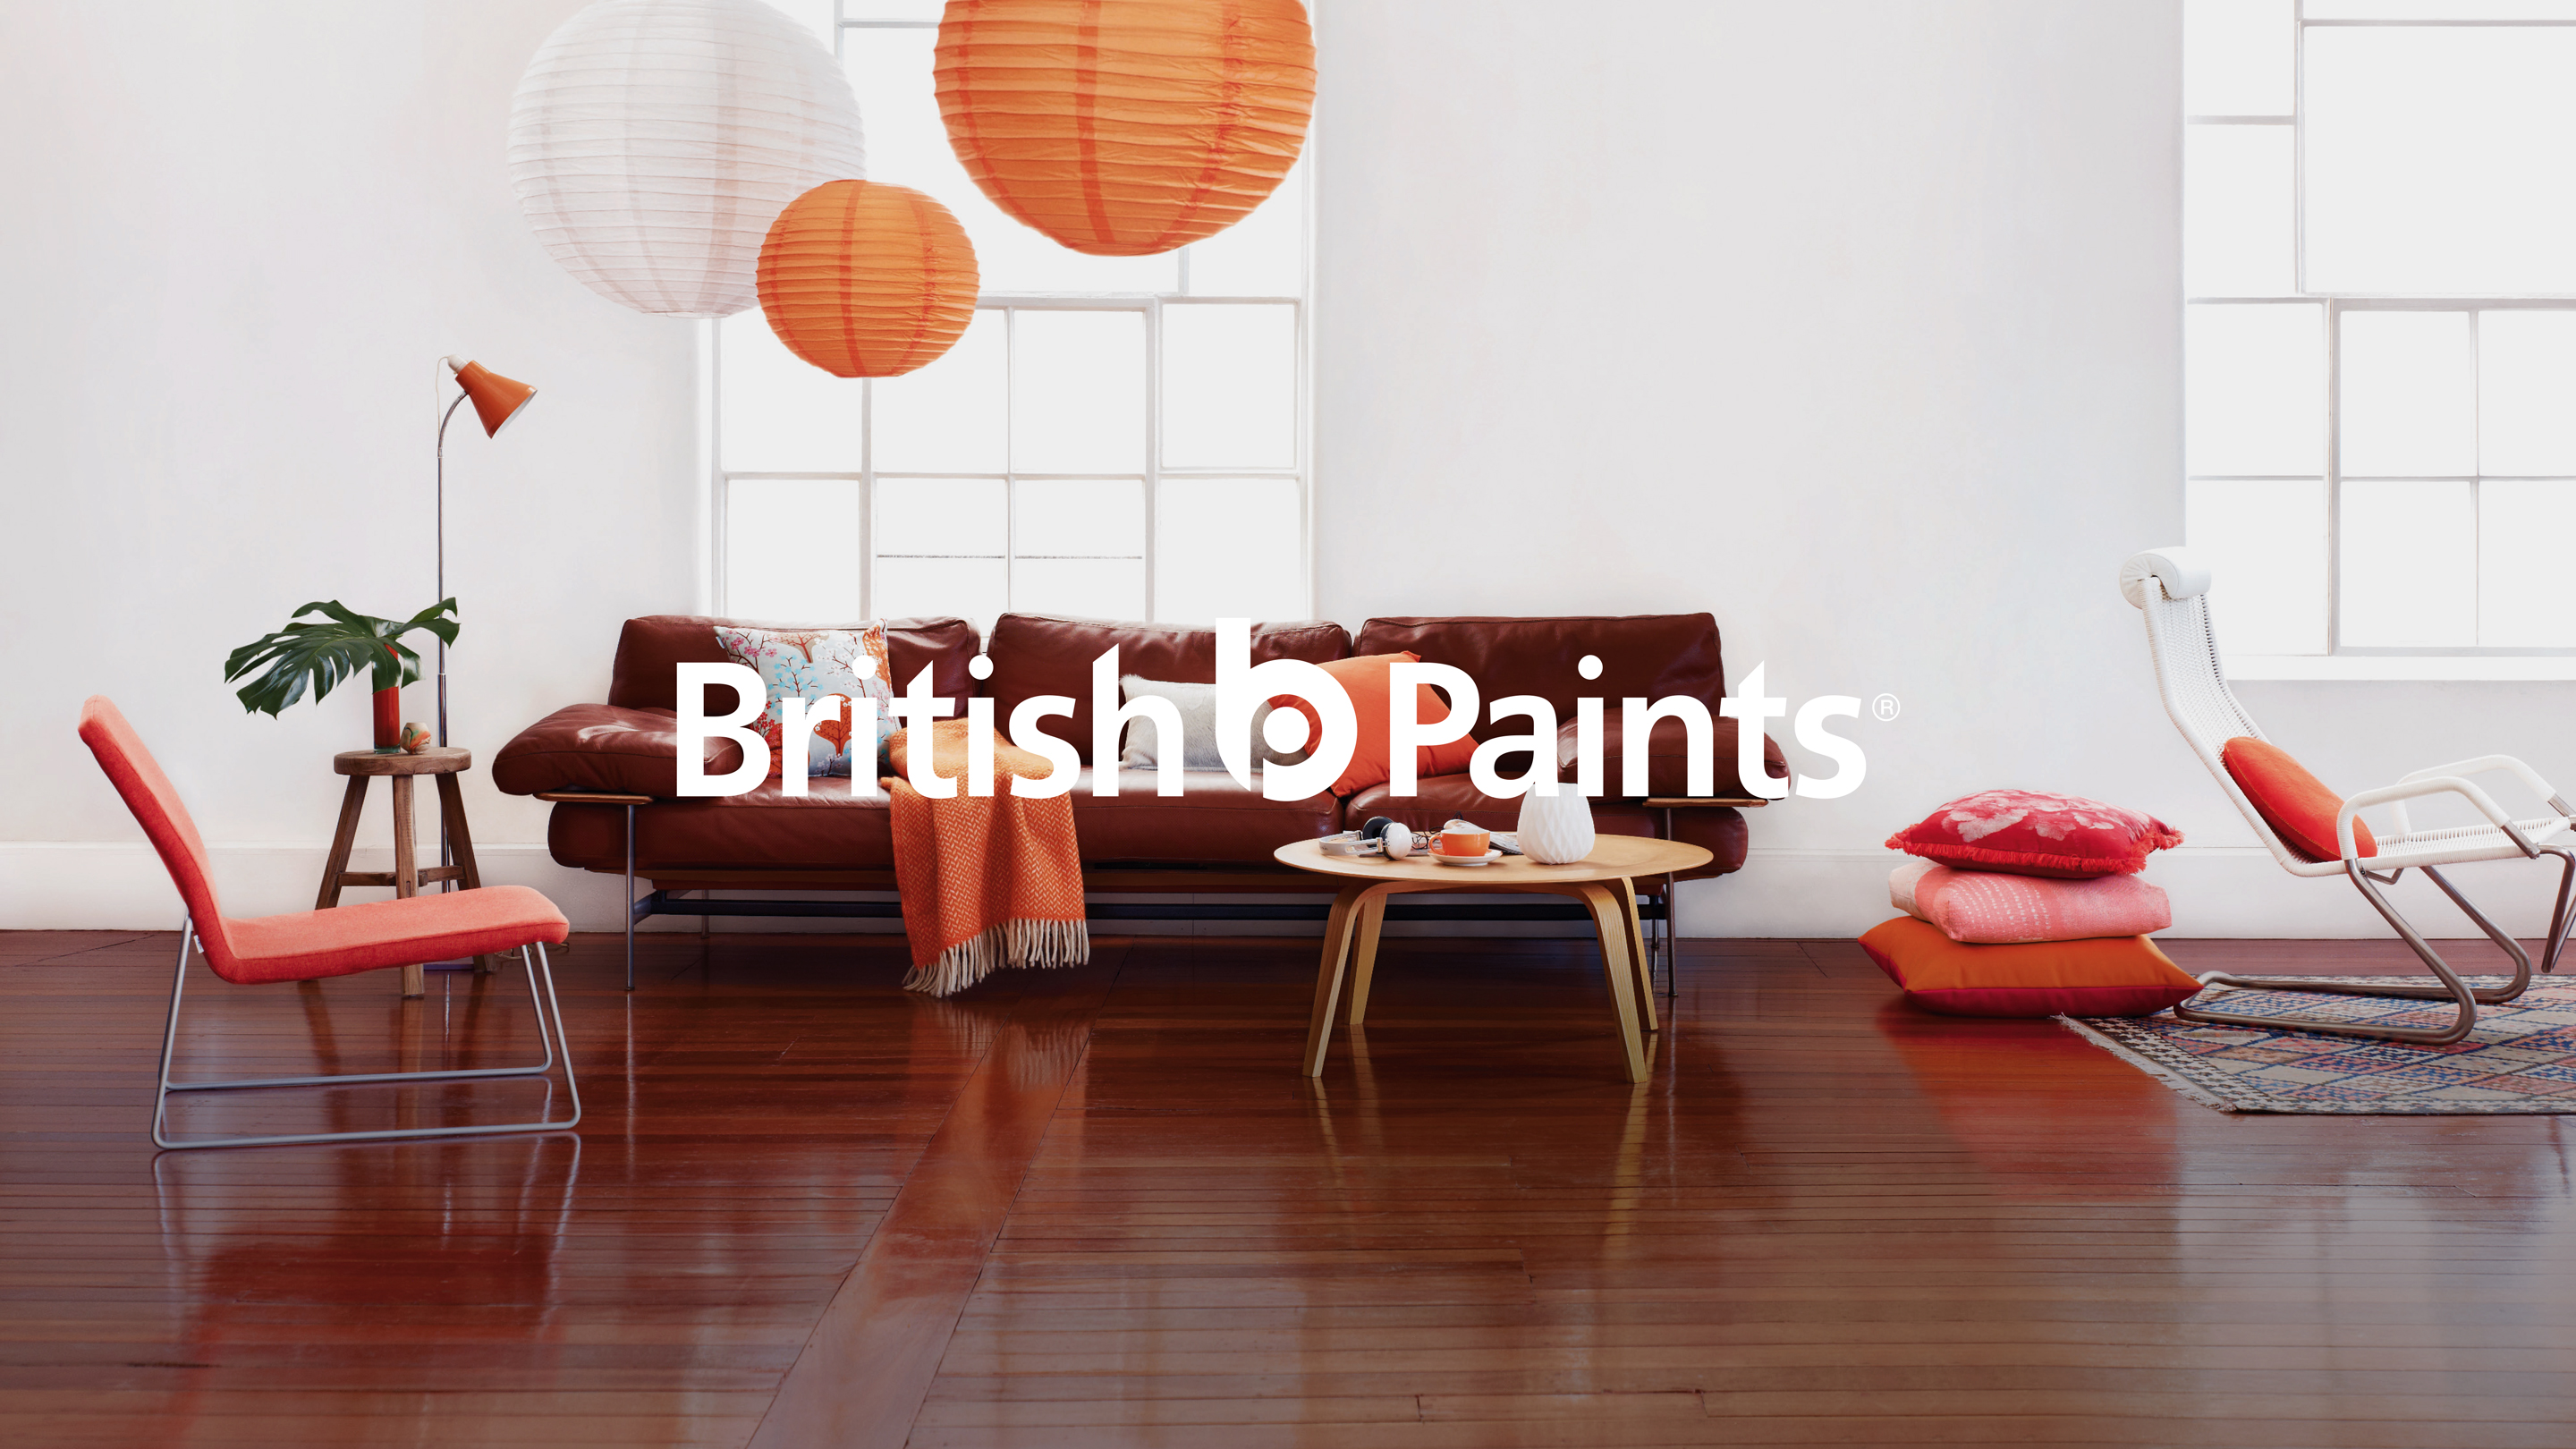 British Paints – New Branding